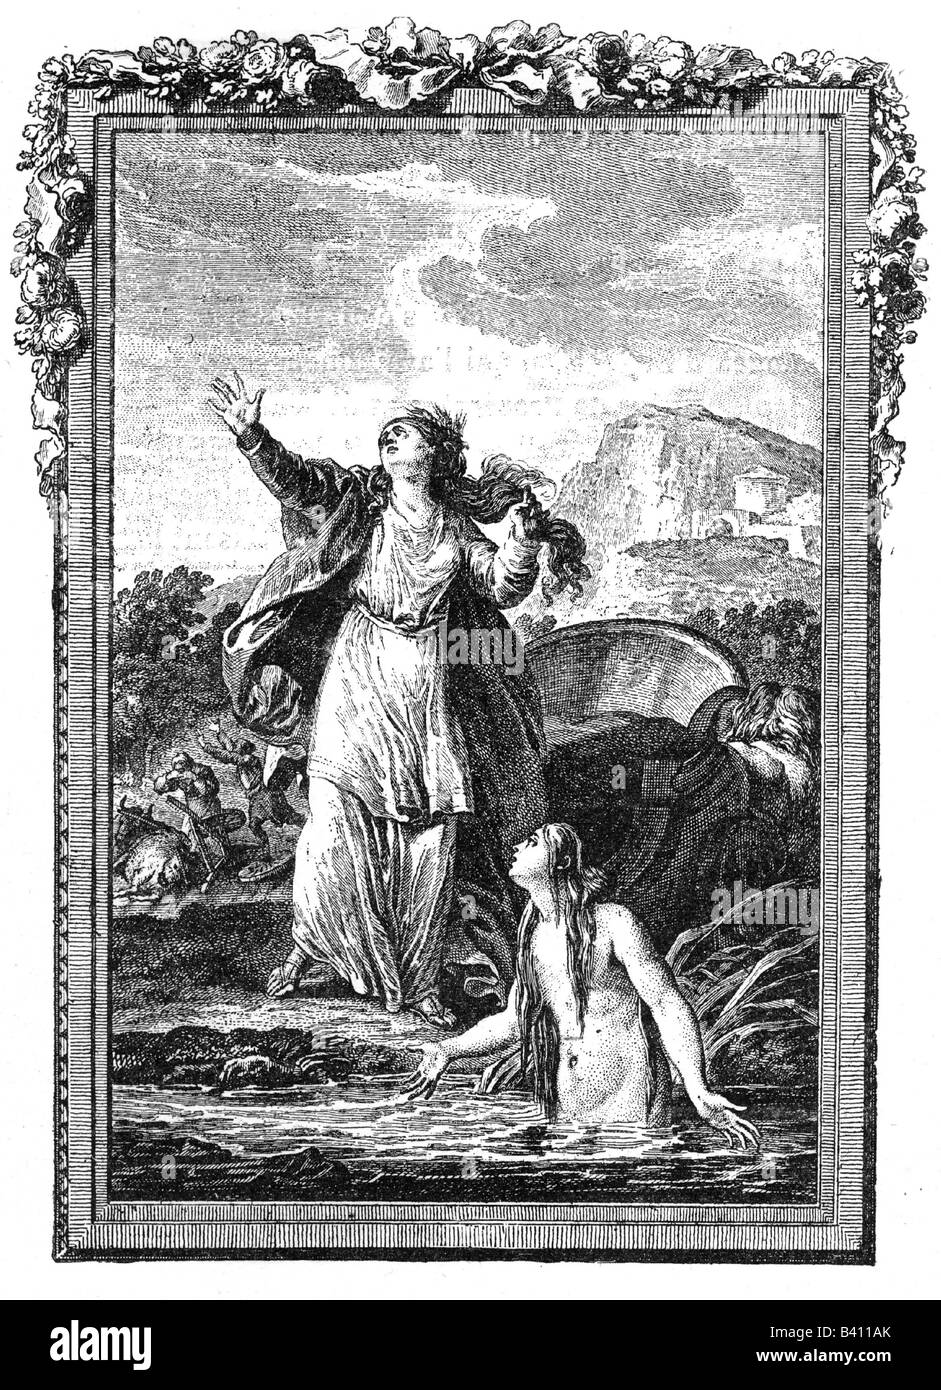 Demeter greek goddess of grain and fertility copper engraving demeter greek goddess of grain and fertility copper engraving 18th century ceres mythology religion paganism deity anci buycottarizona Image collections